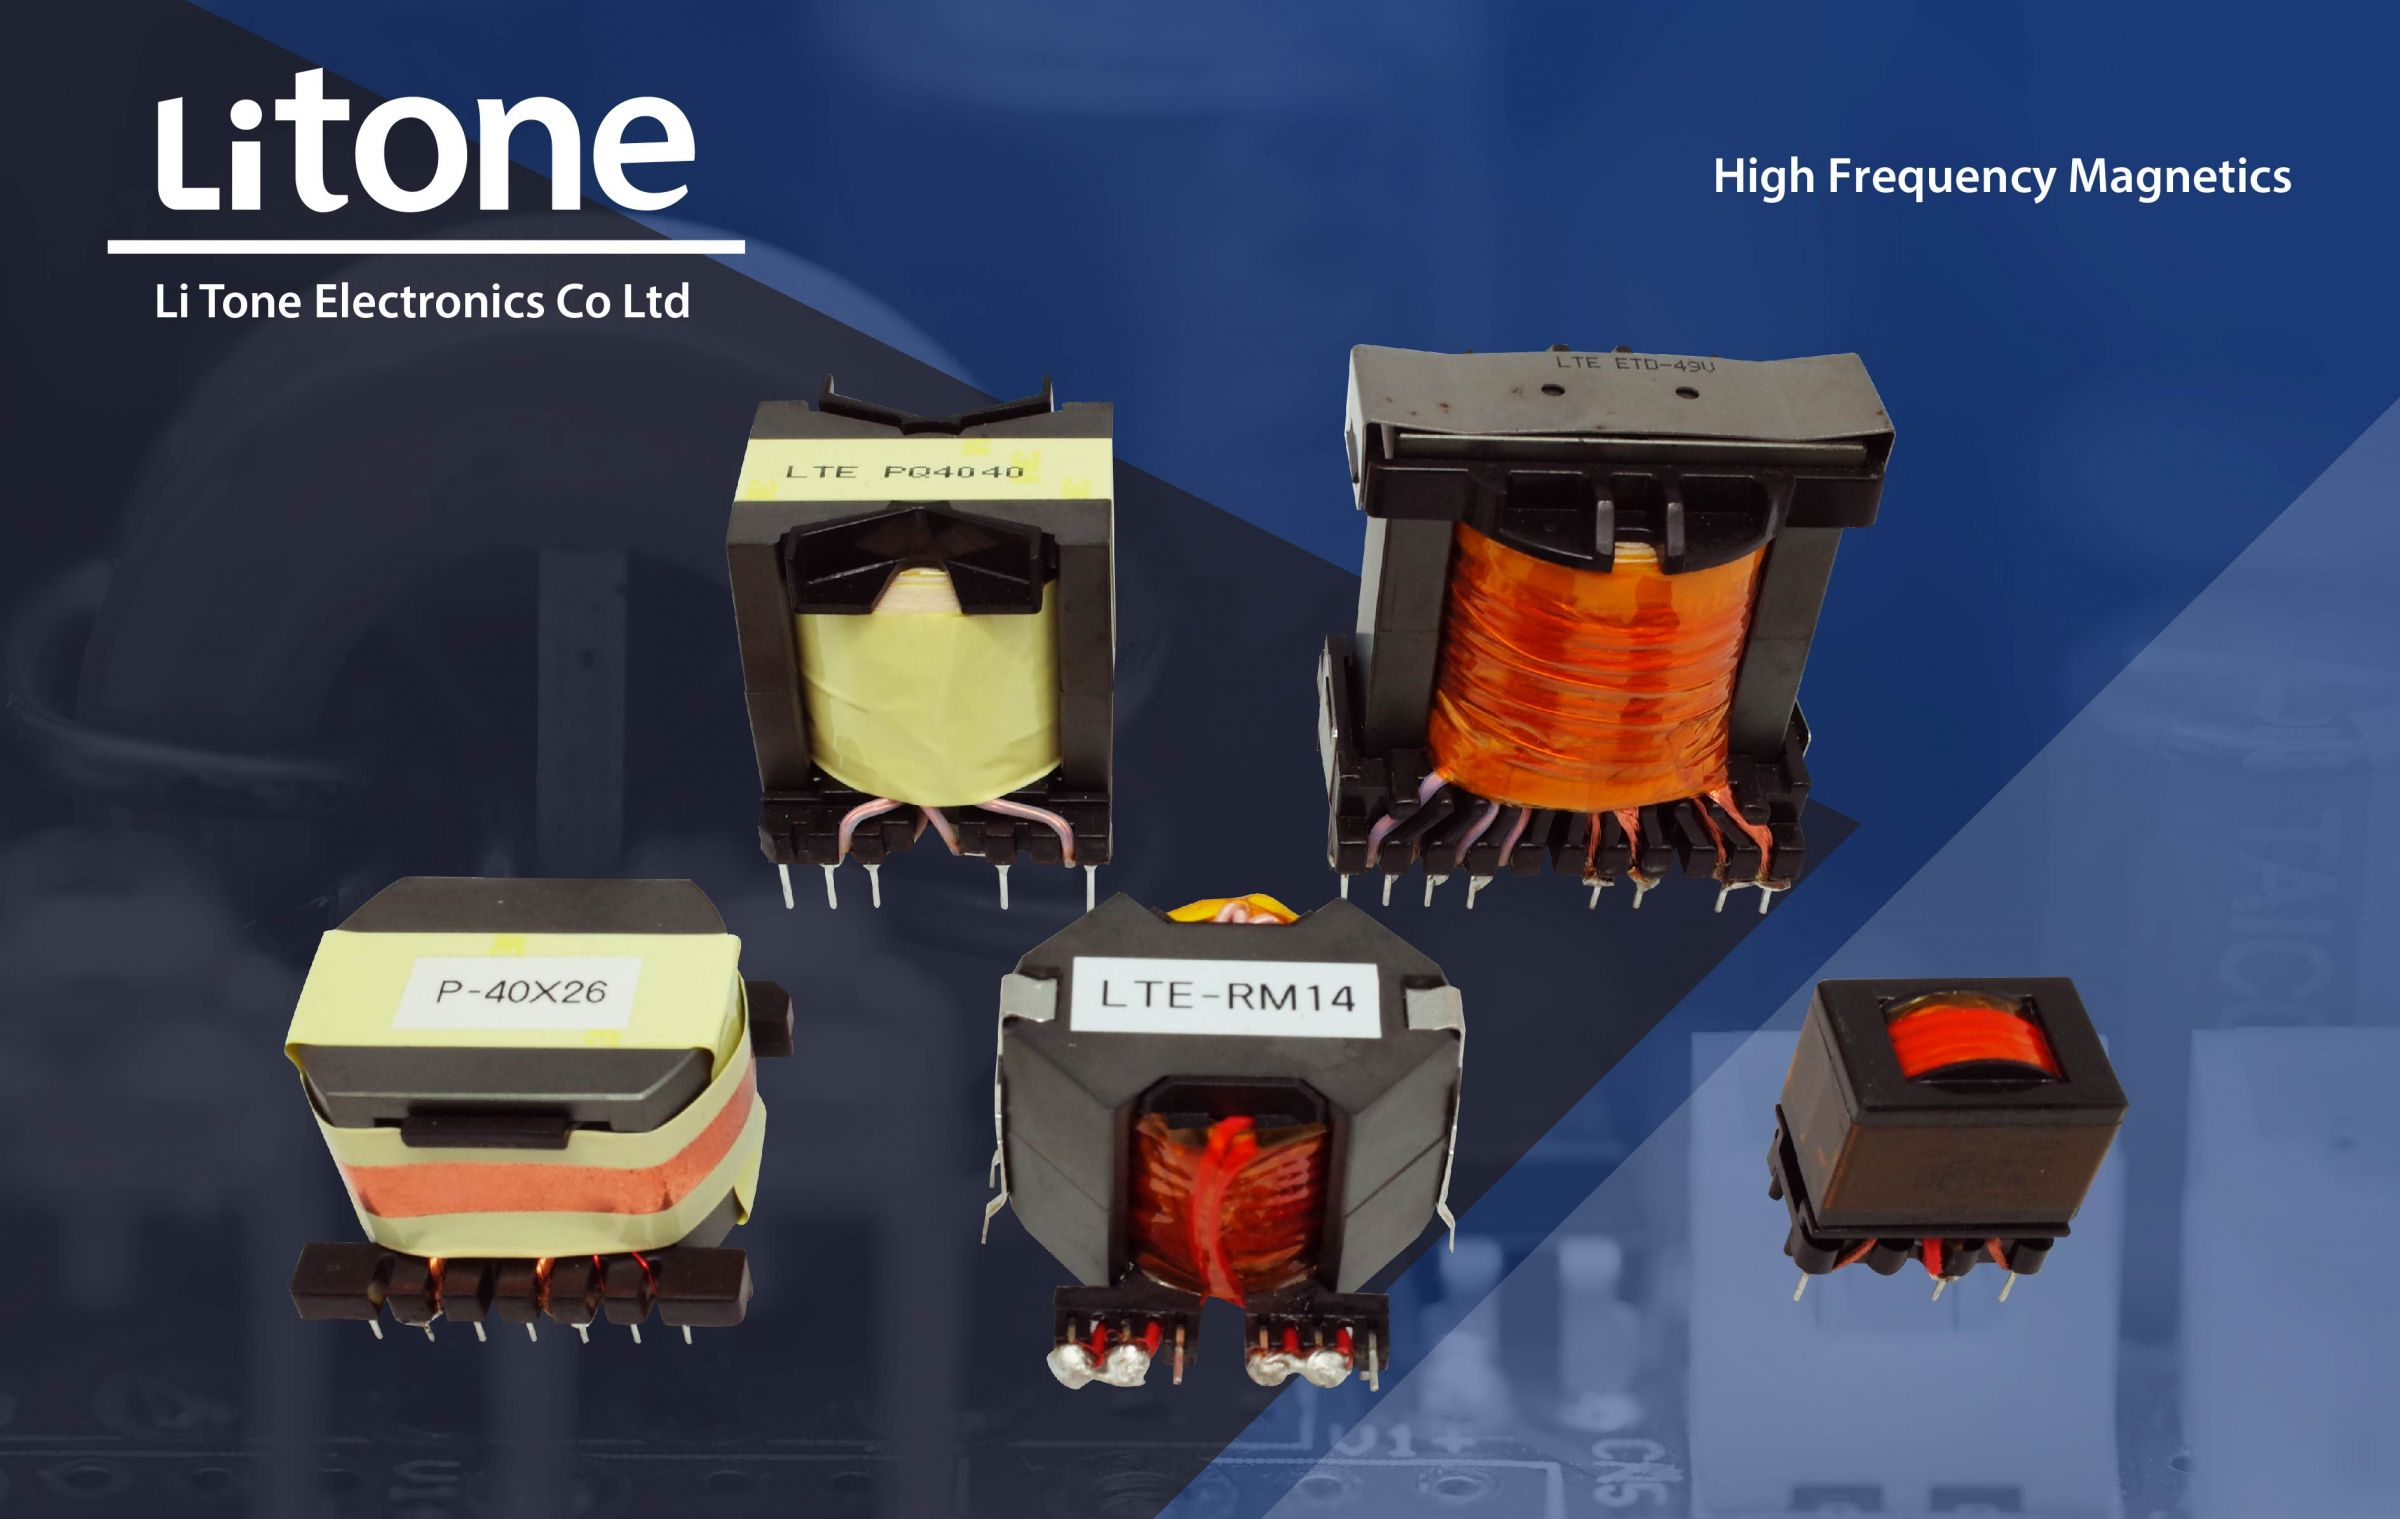 High Frequency Magnetics